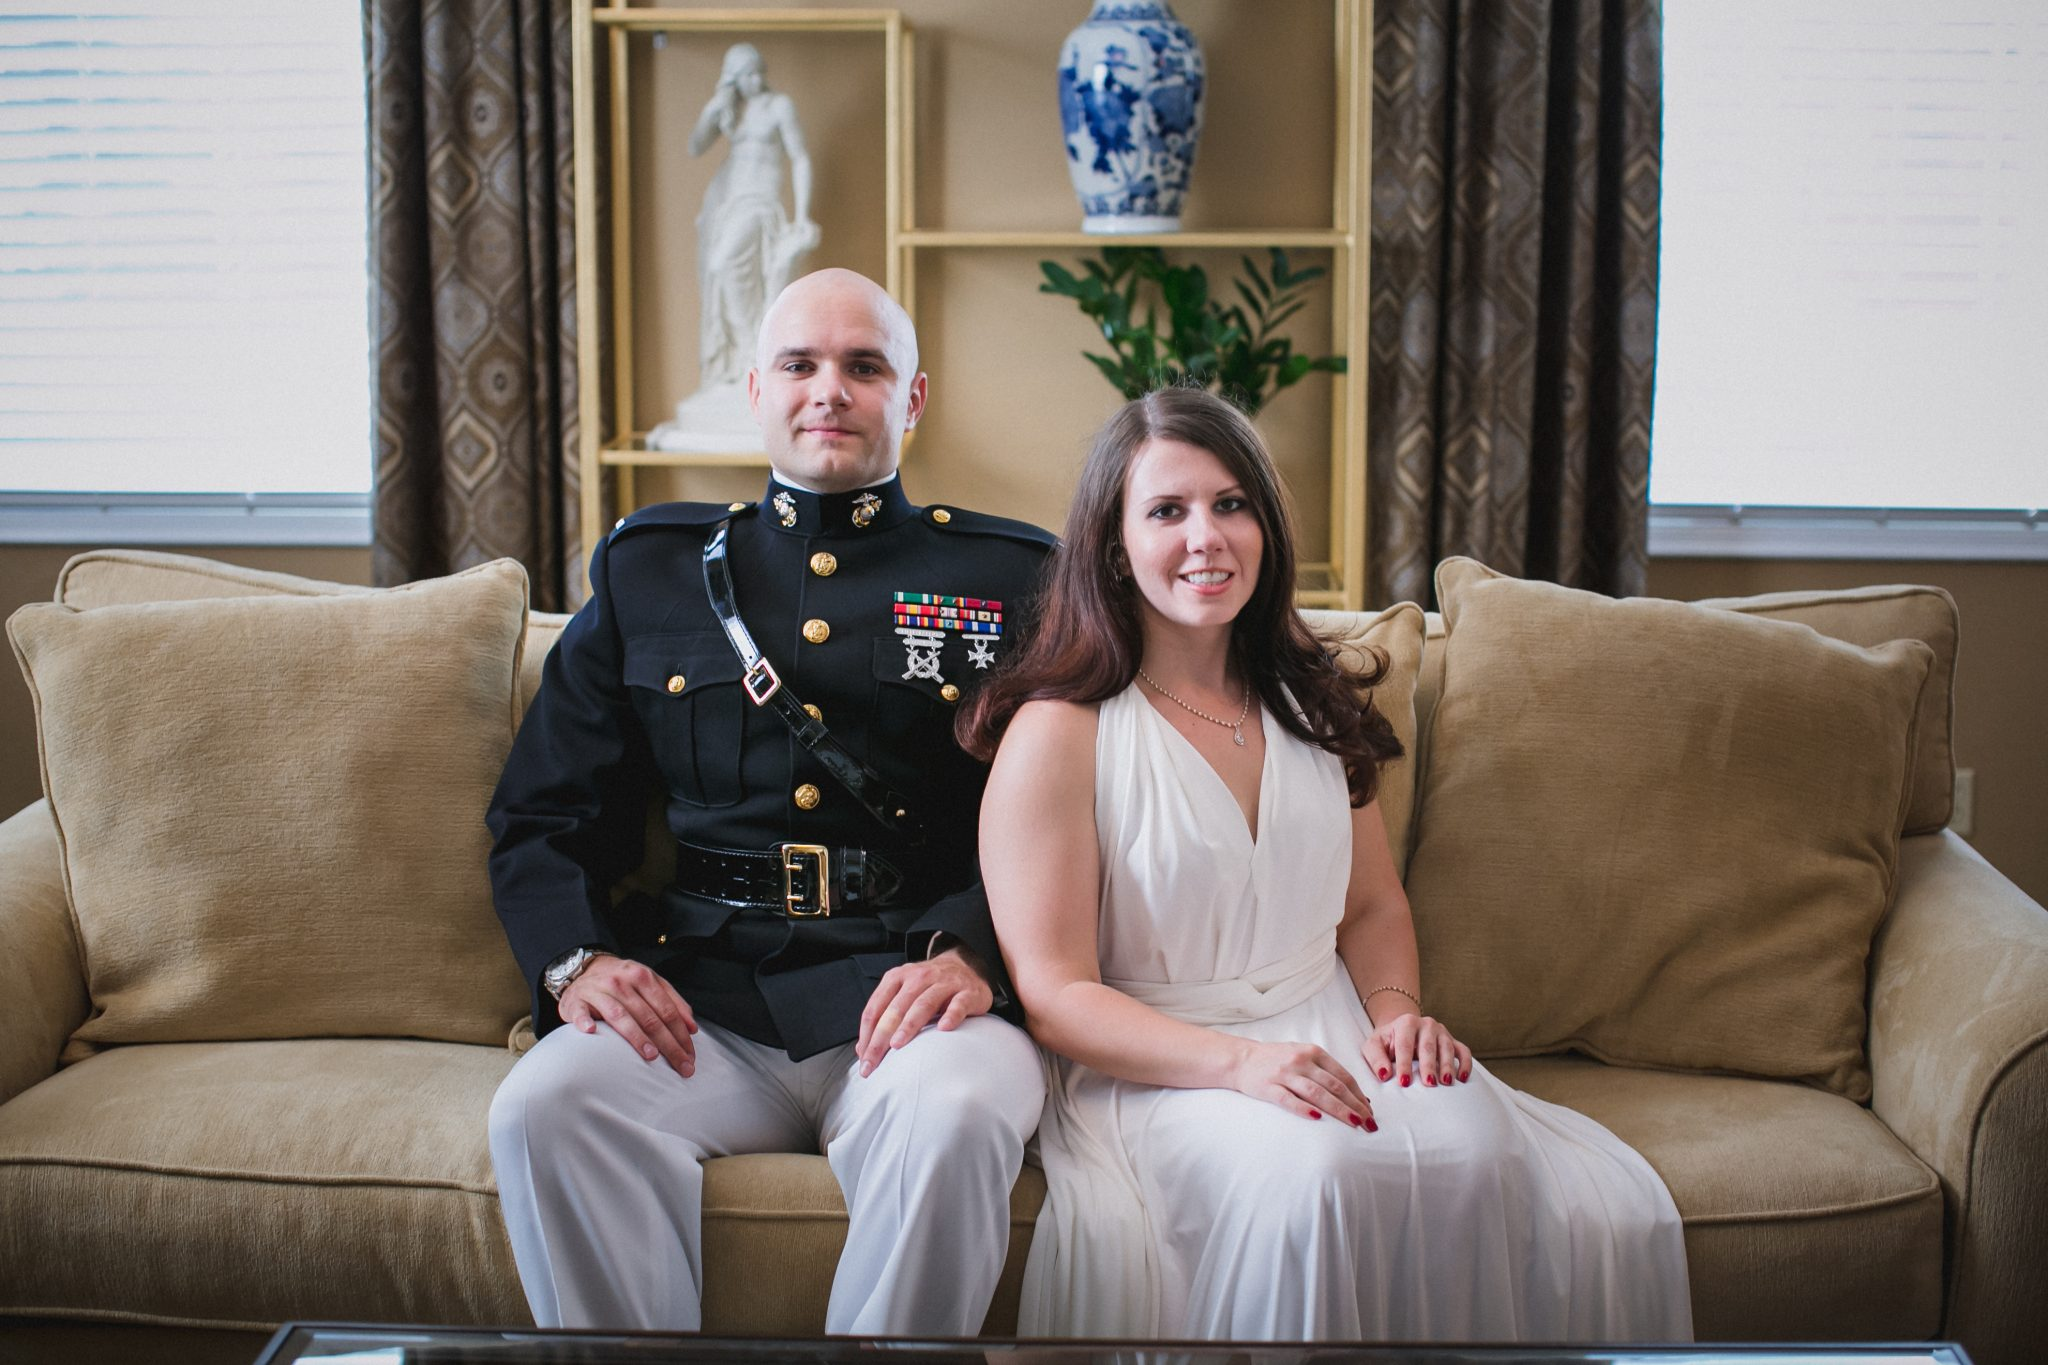 Groom in military clothing sitting by his bride in a white dress